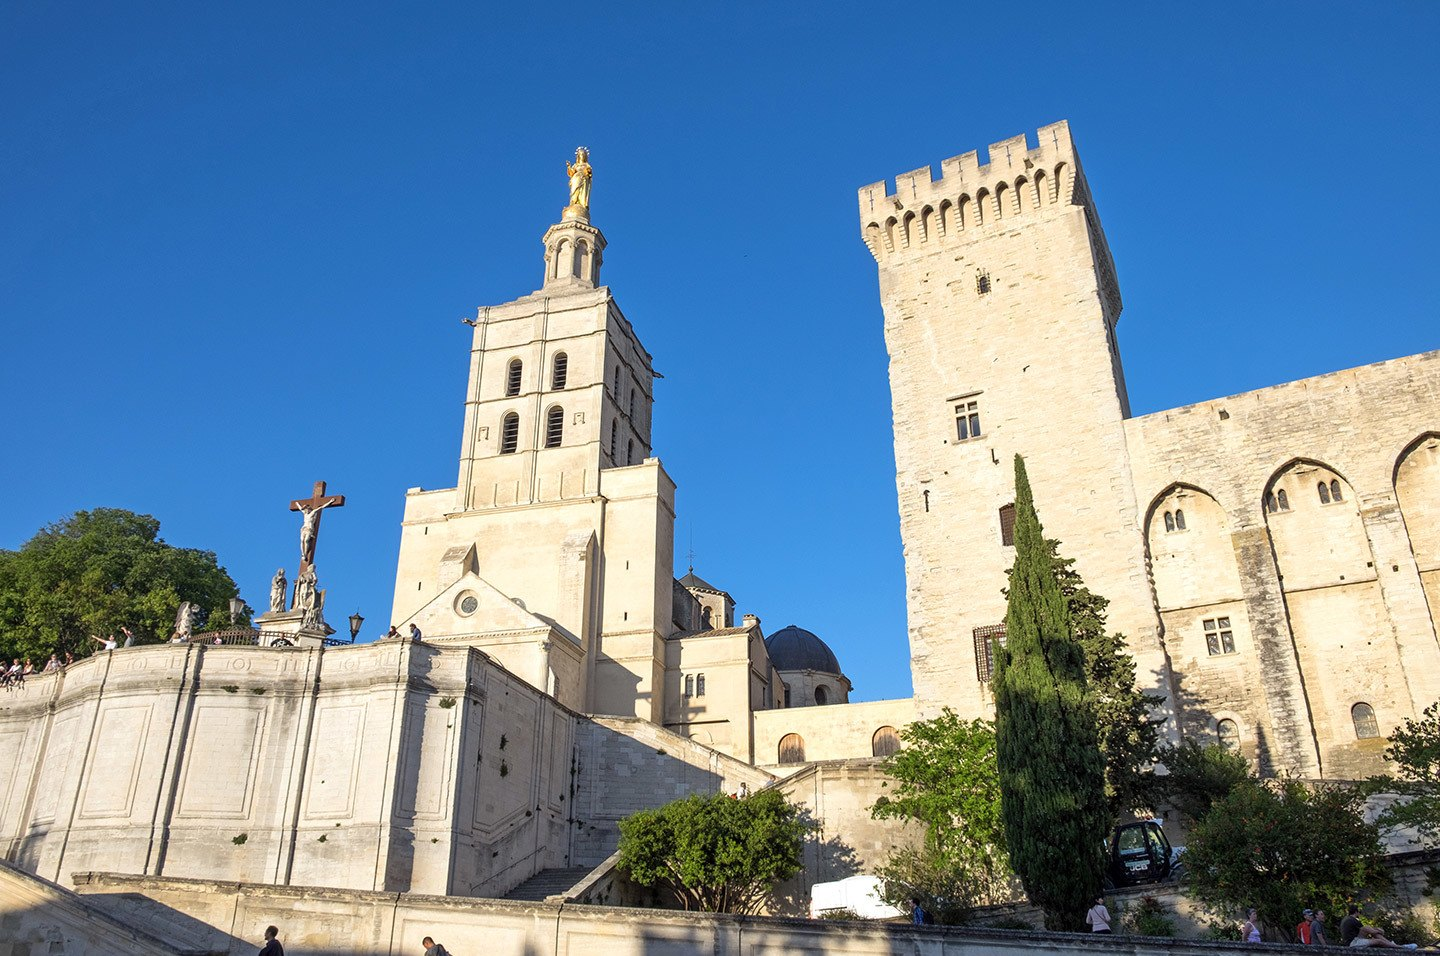 Palace des Papes, Avignon, France